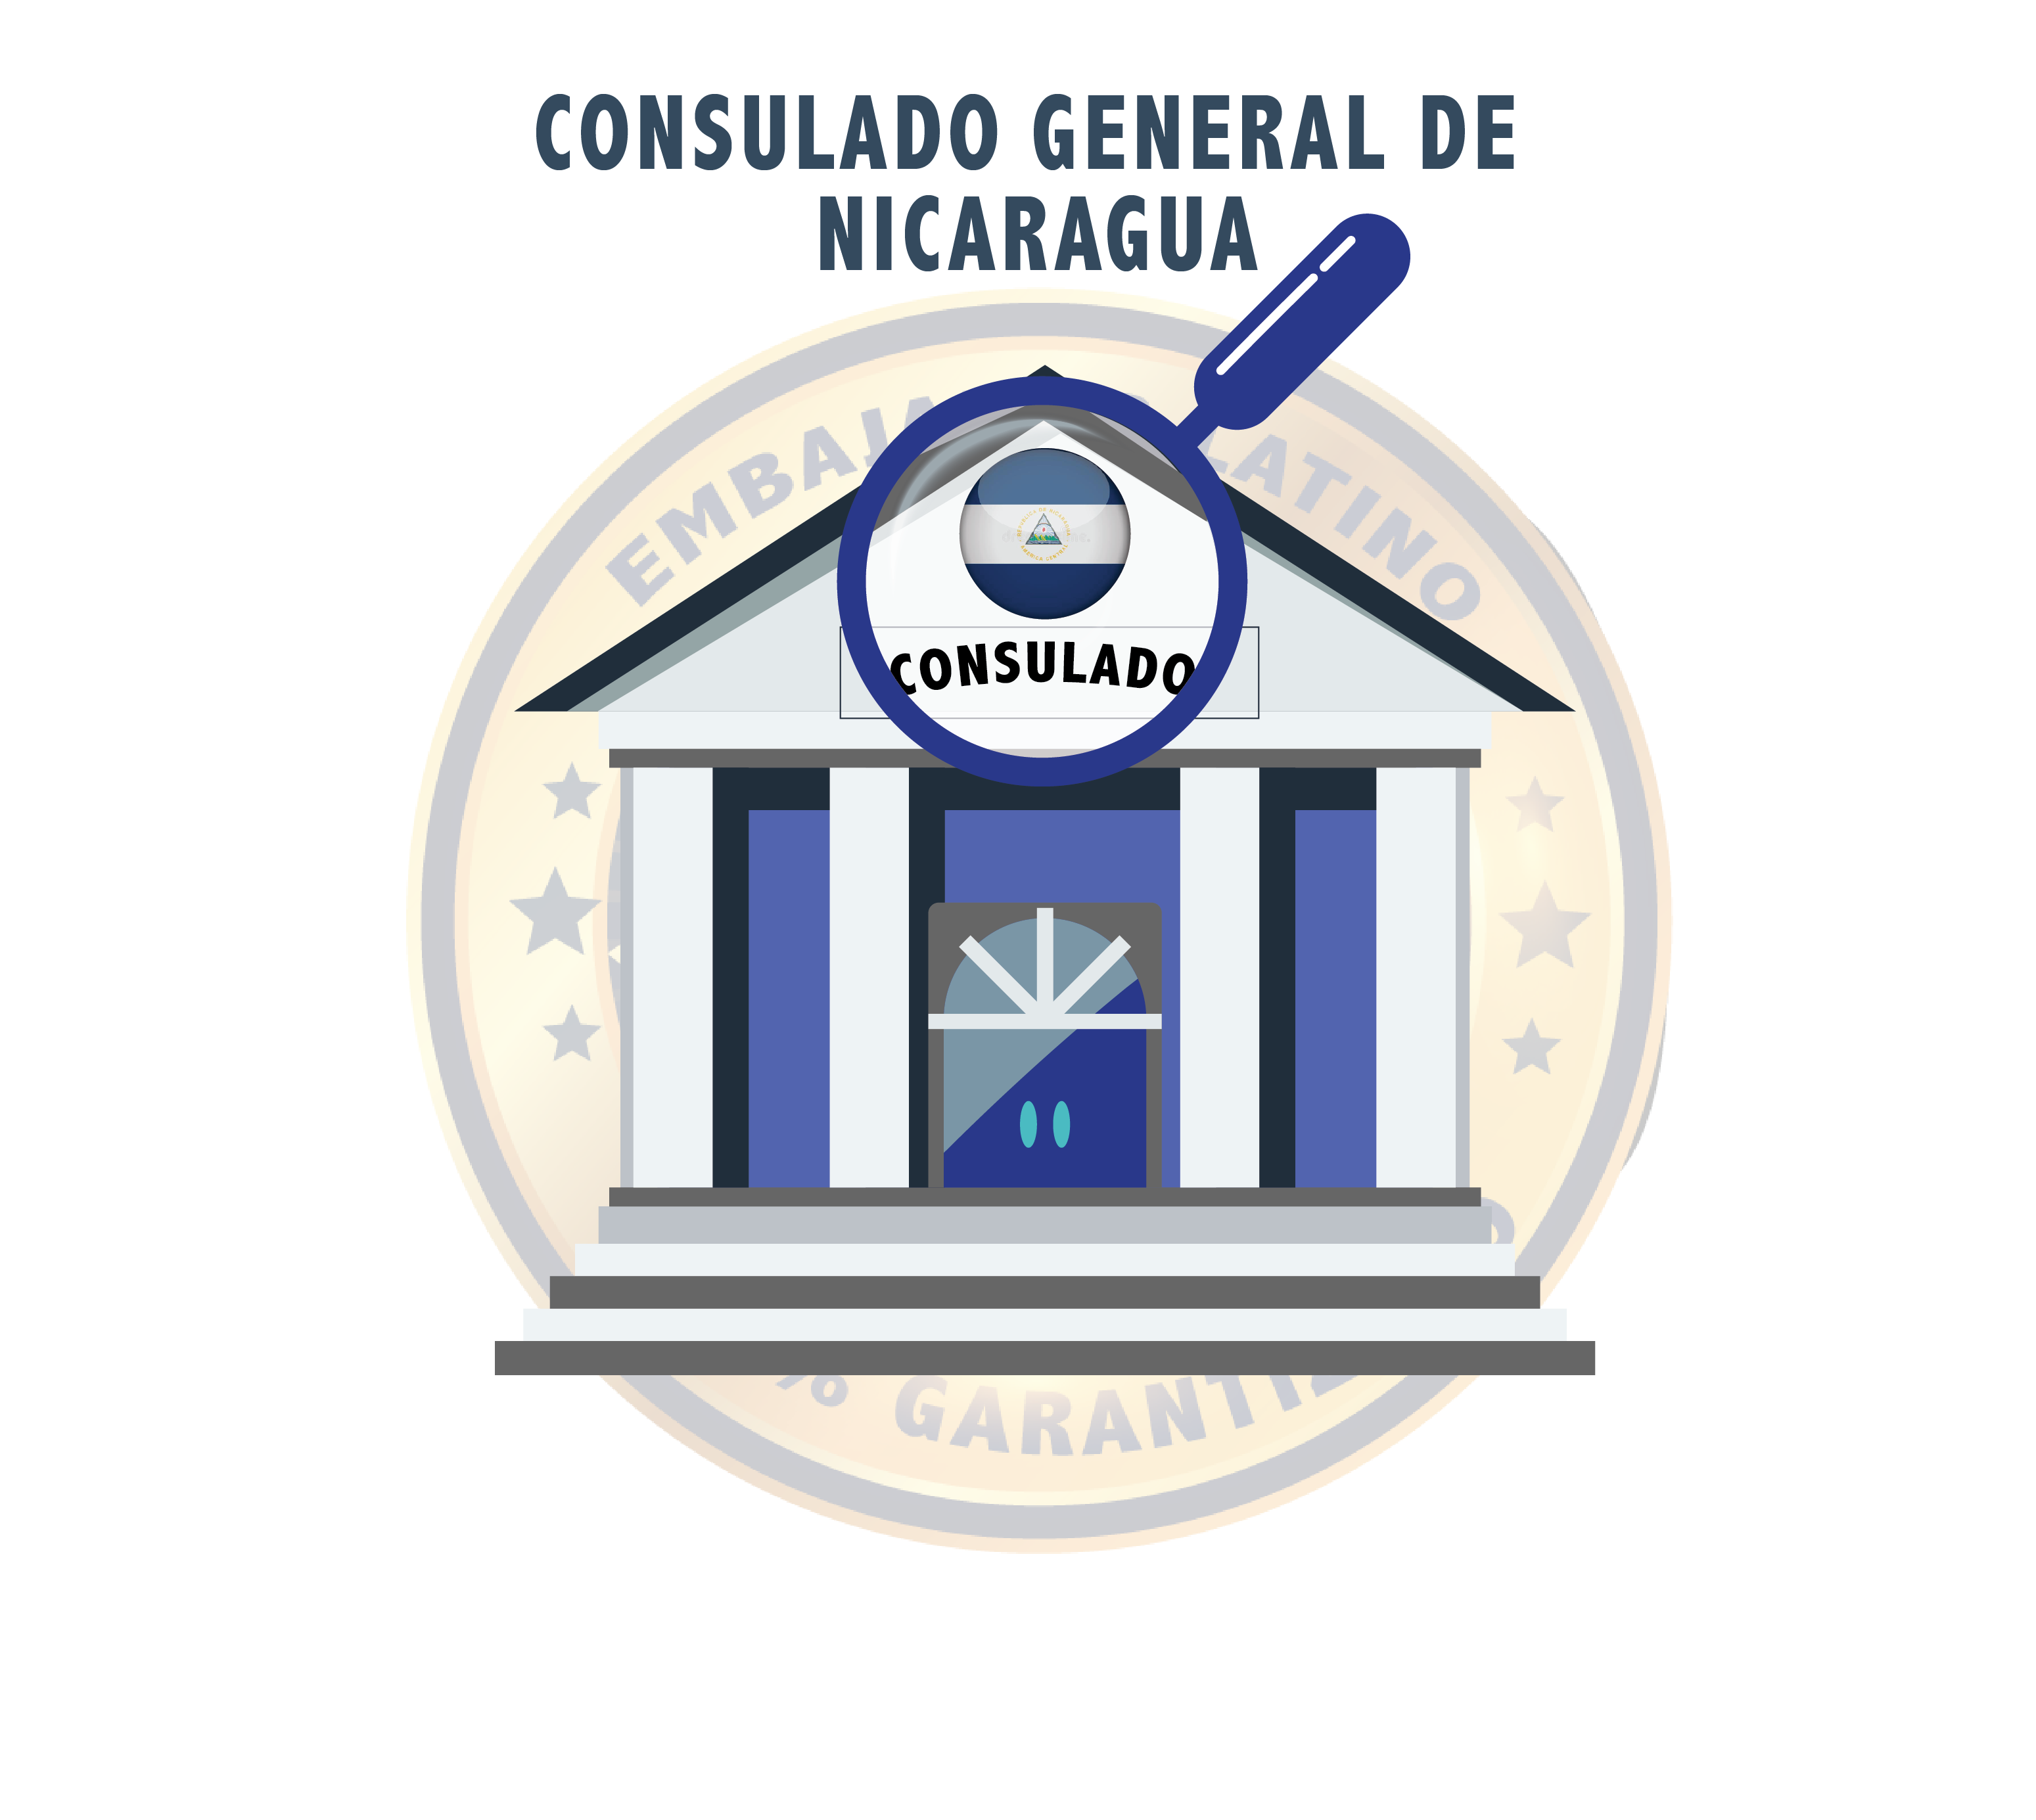 Consulate General of Nicaragua